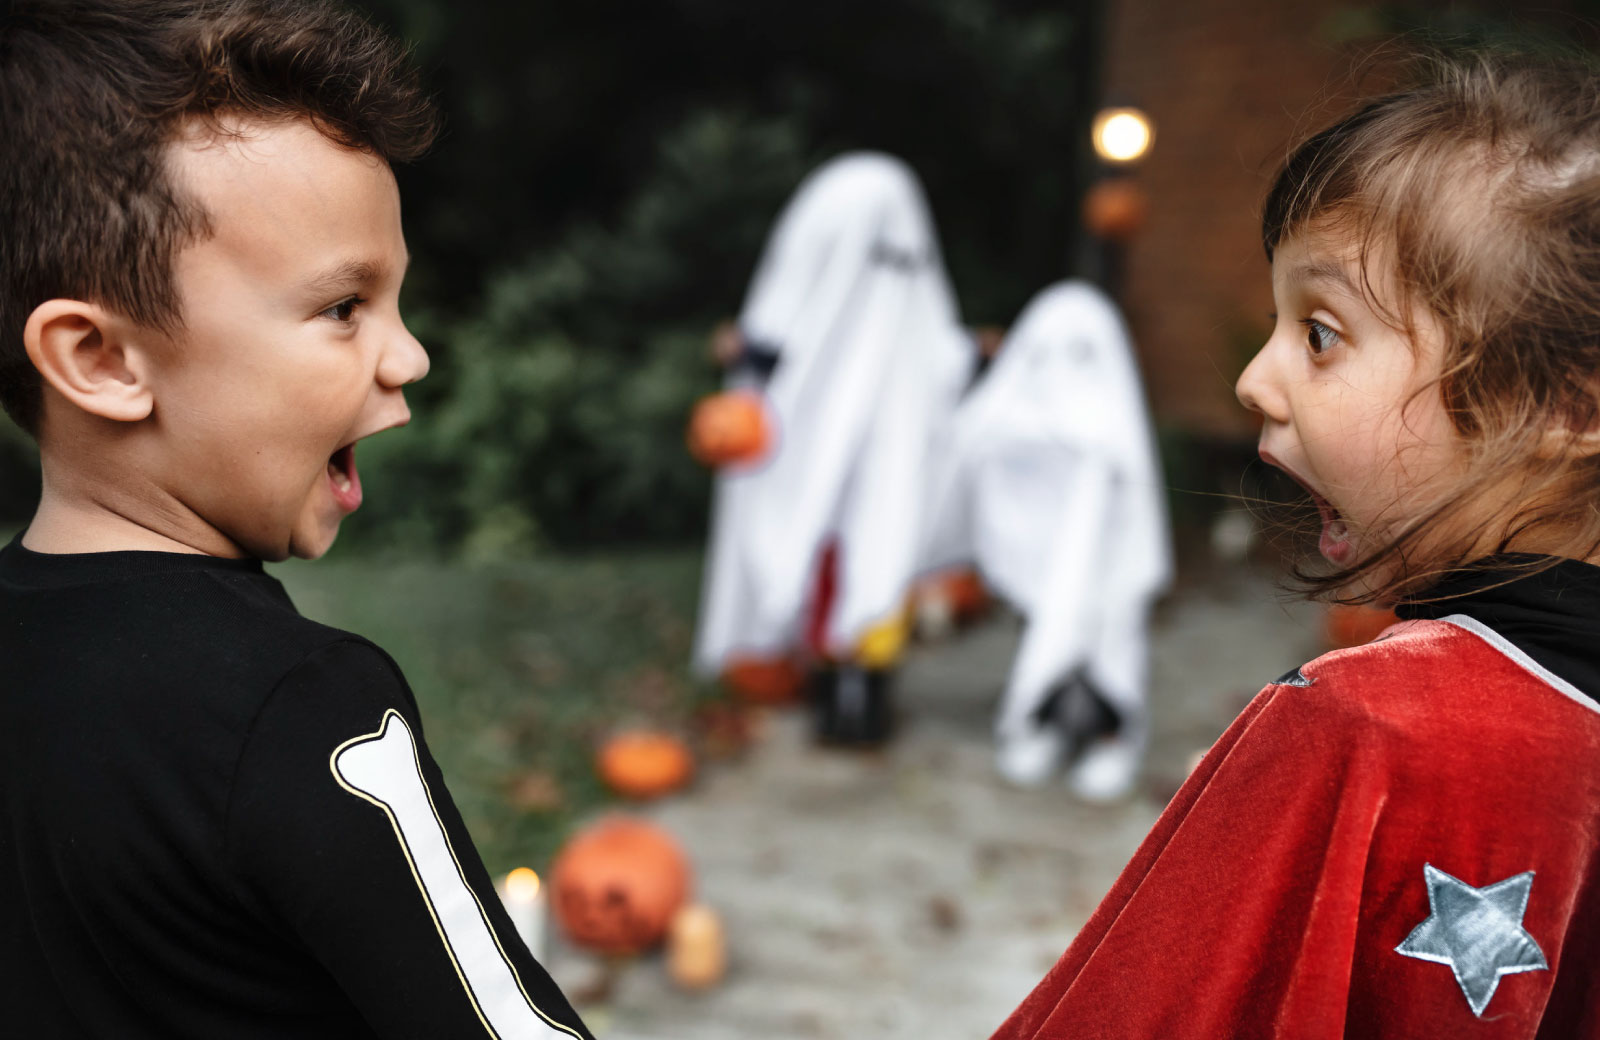 kids looking scared trick or treating